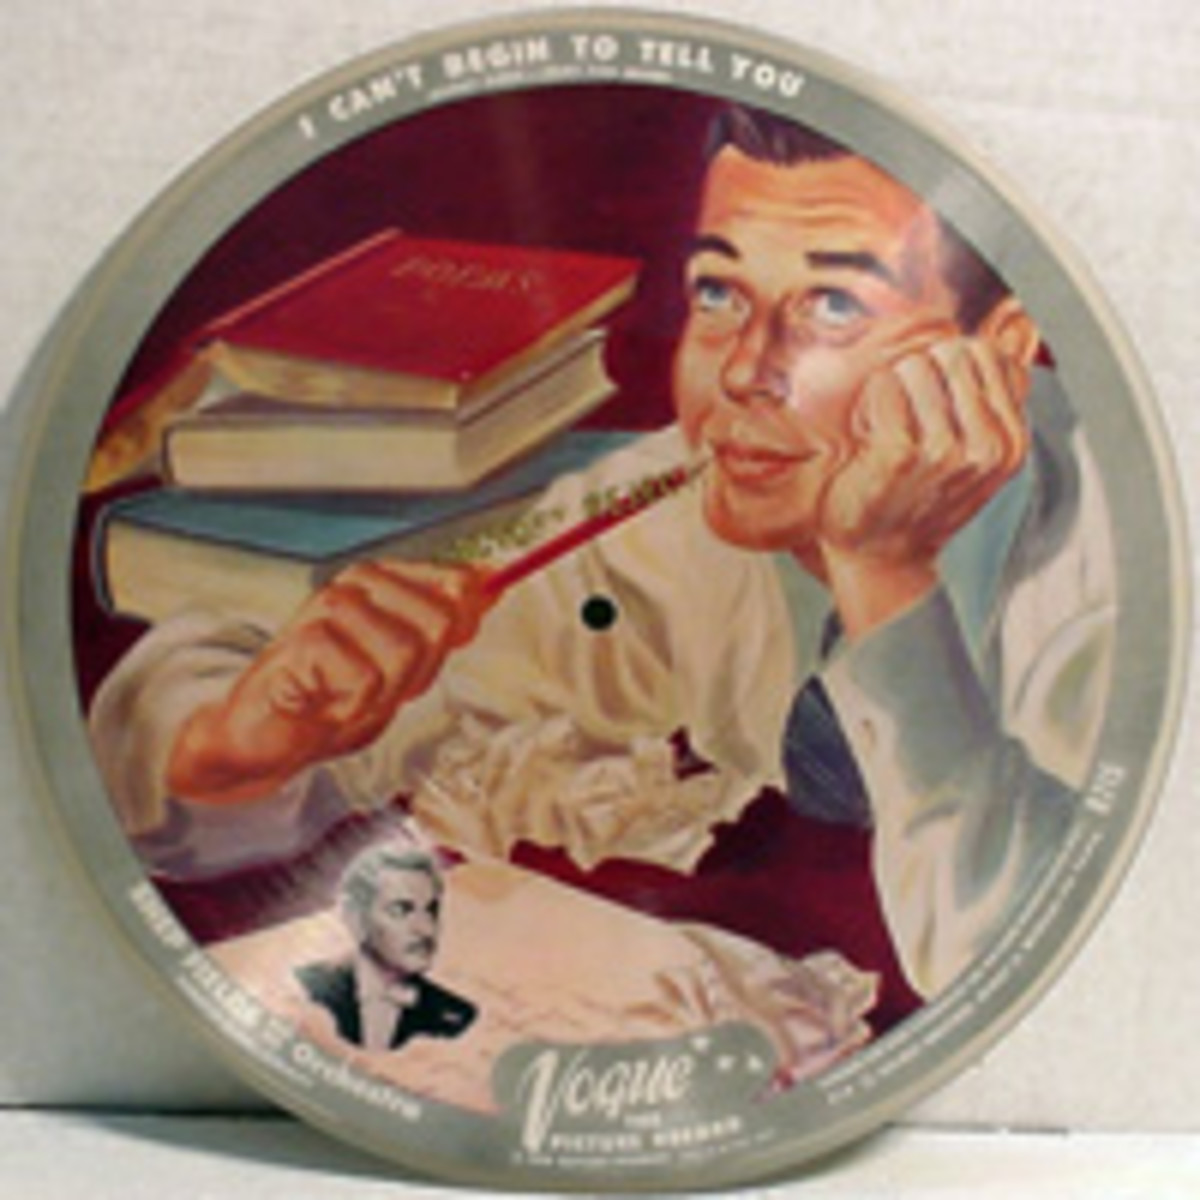 Shep Fields Waitin' For The Train To come In Vogue R715 Picture Disc